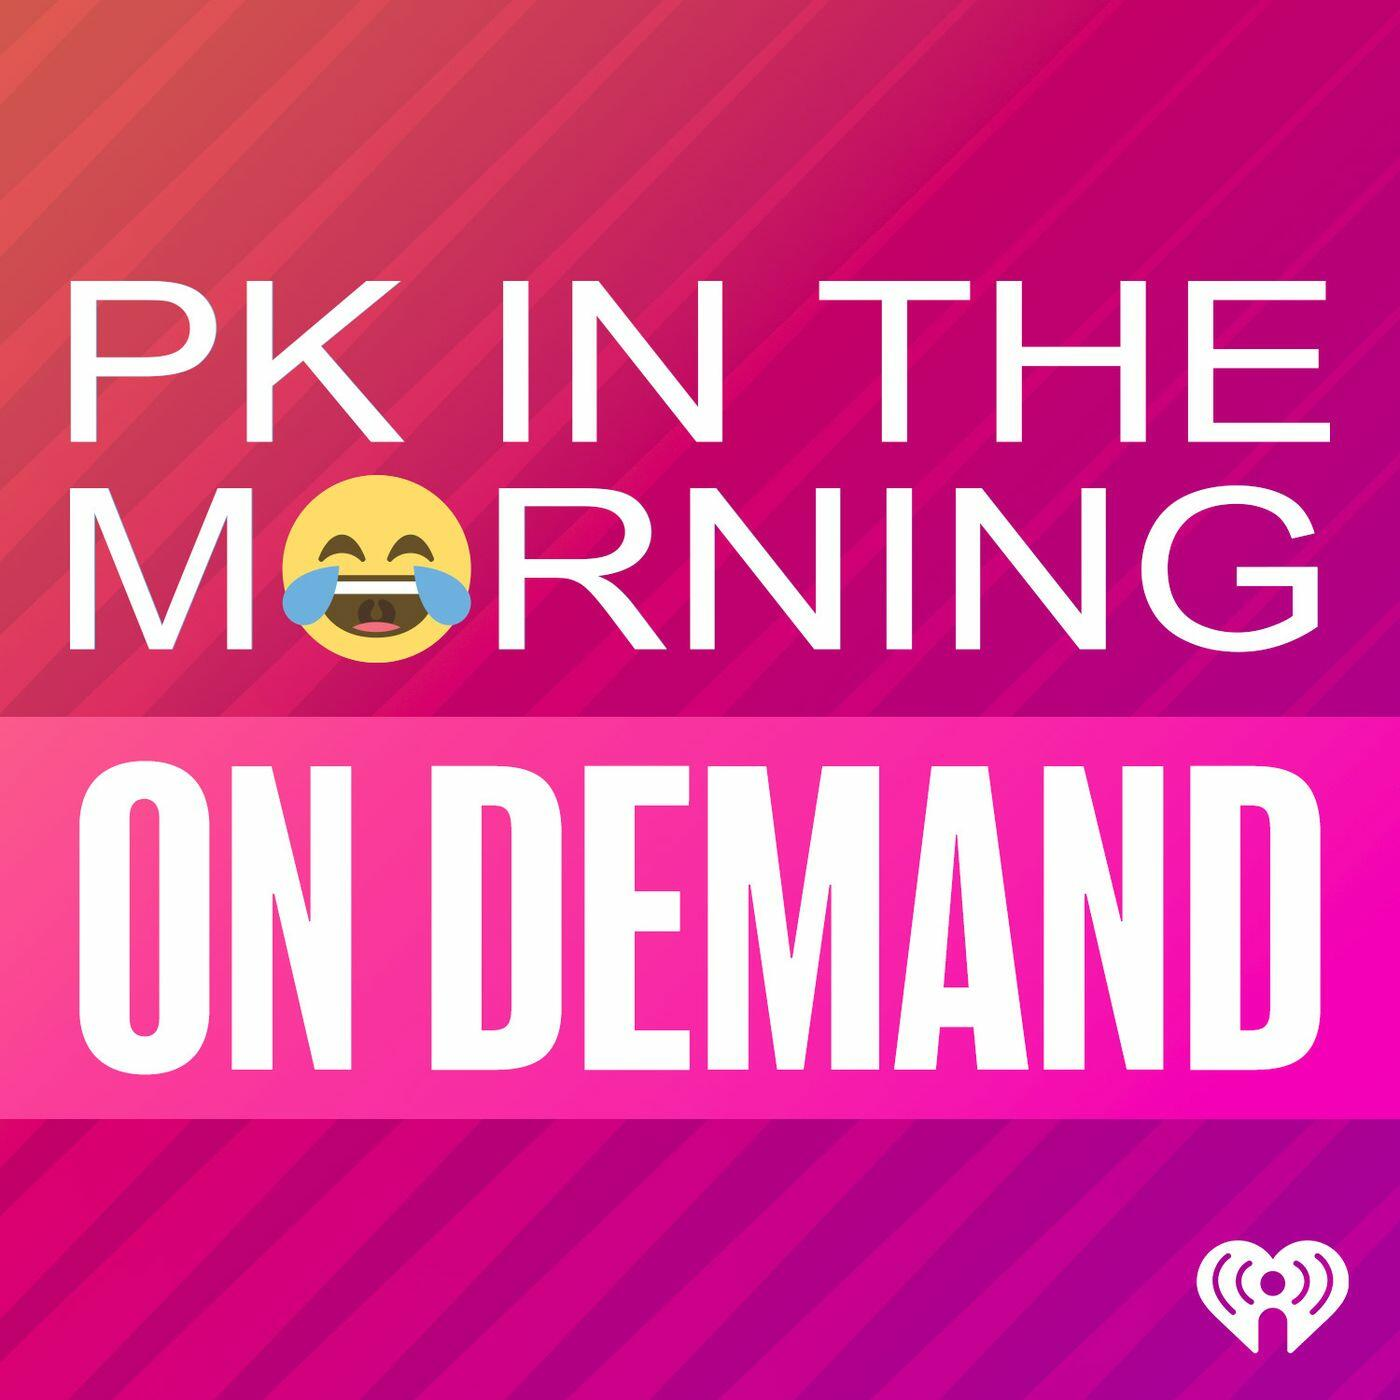 Listen to the PK in the Morning: On Demand Episode - Exclusive Interview With Ally Brooke + Who's DM's Is She Trying To Slide Into? on iHeartRadio | iHeartRadio